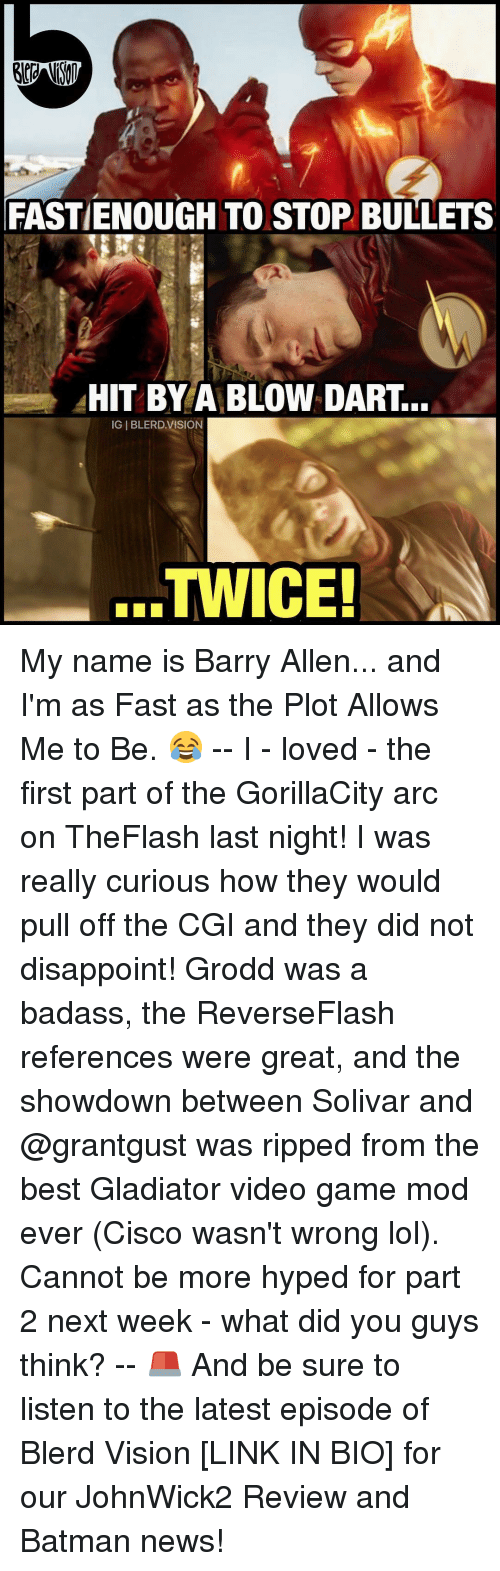 Gladiator: FASTIENOUGH TO STOP BULLETS  HIT BY A BLOW DART.  IGIBLERD VISION  TWICE! My name is Barry Allen... and I'm as Fast as the Plot Allows Me to Be. 😂 -- I - loved - the first part of the GorillaCity arc on TheFlash last night! I was really curious how they would pull off the CGI and they did not disappoint! Grodd was a badass, the ReverseFlash references were great, and the showdown between Solivar and @grantgust was ripped from the best Gladiator video game mod ever (Cisco wasn't wrong lol). Cannot be more hyped for part 2 next week - what did you guys think? -- 🚨 And be sure to listen to the latest episode of Blerd Vision [LINK IN BIO] for our JohnWick2 Review and Batman news!